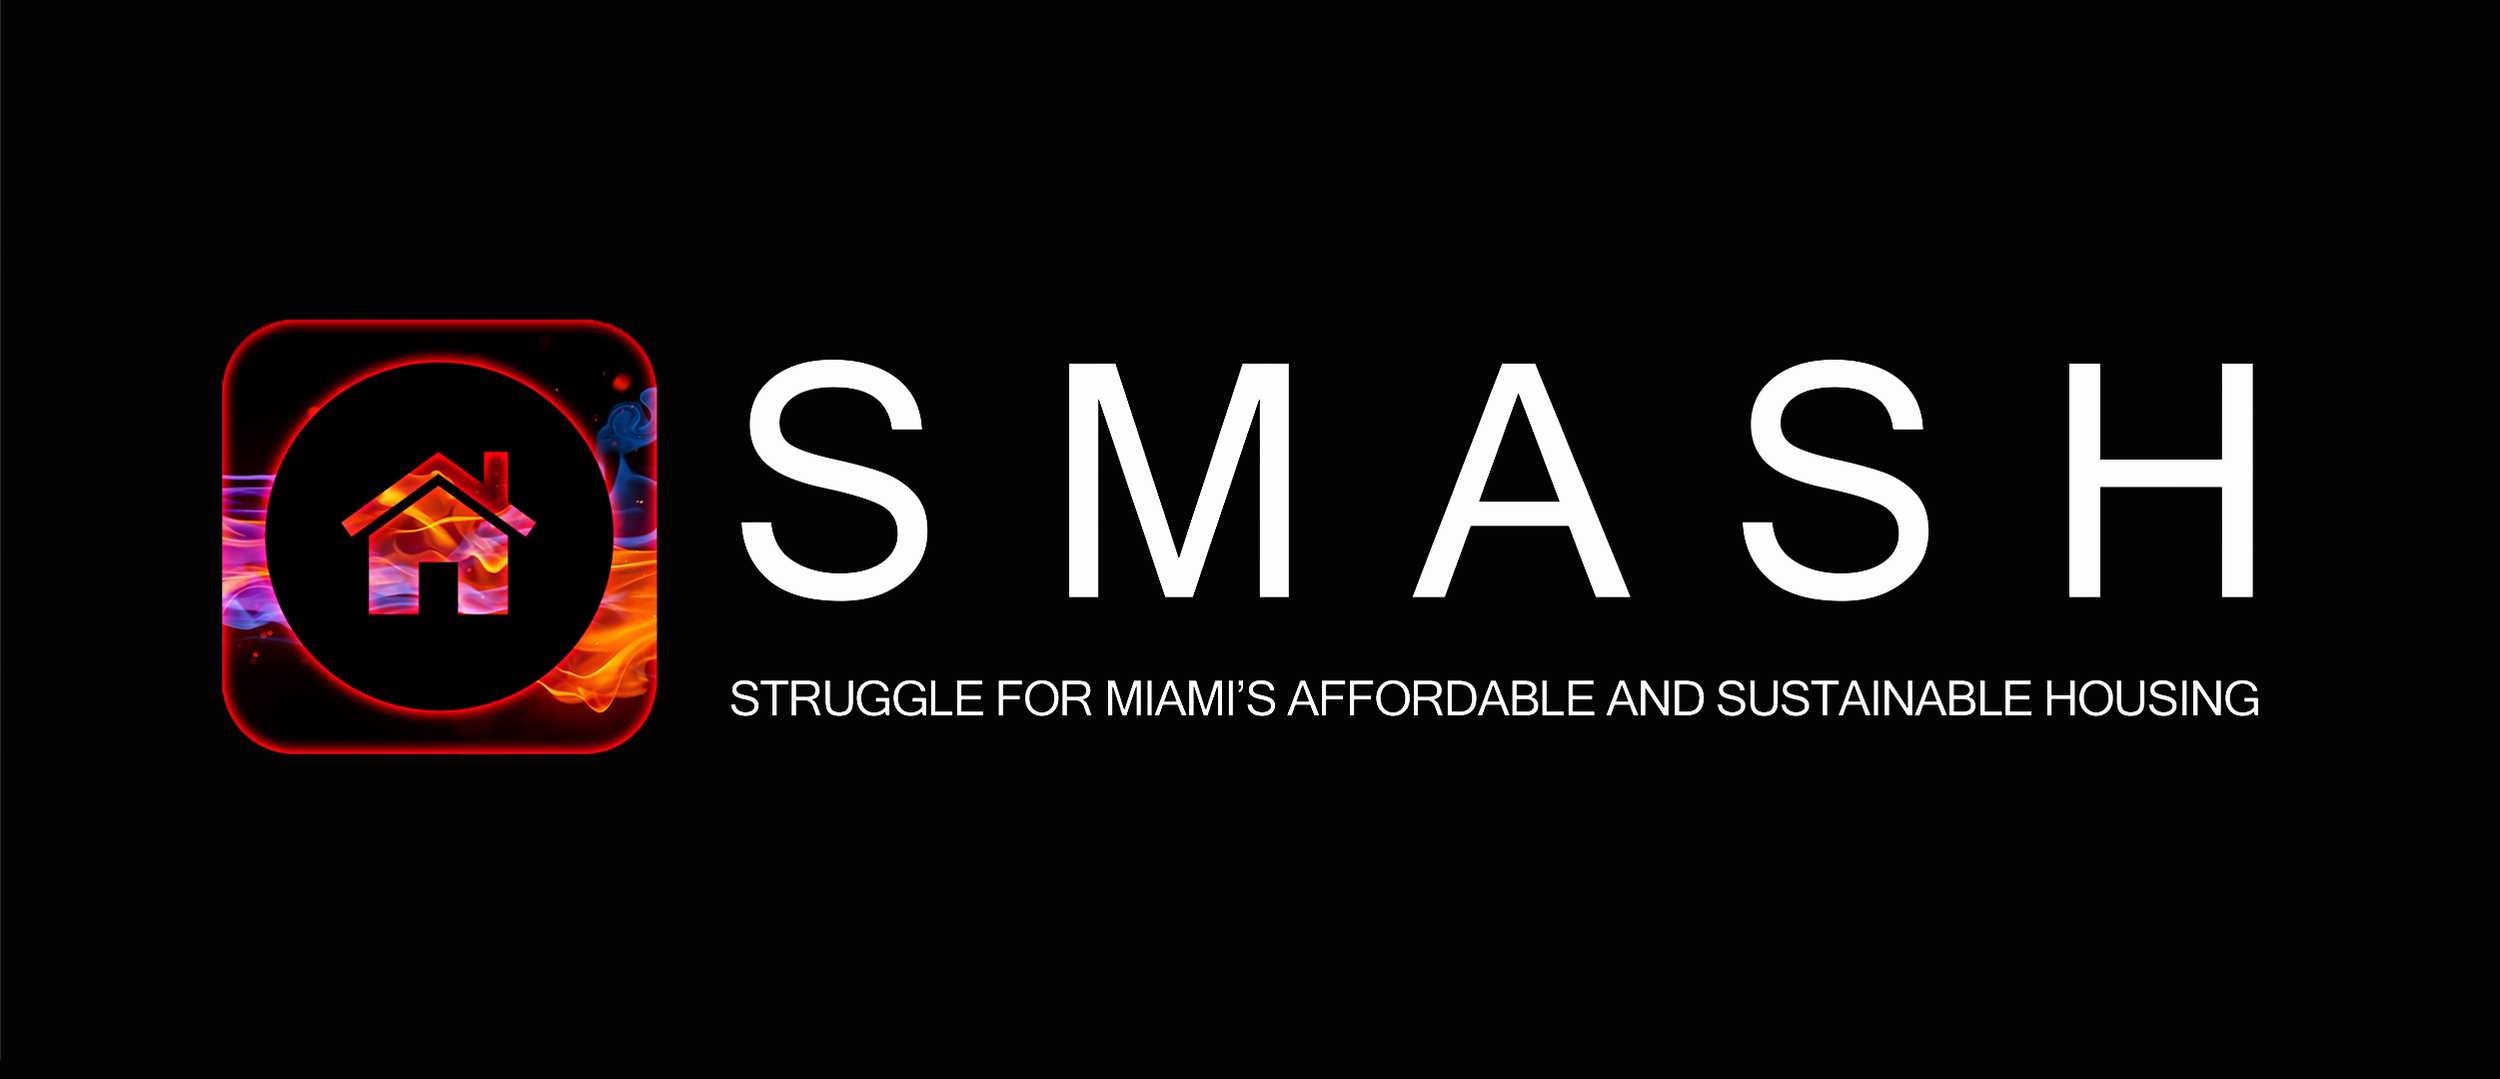 Click here for the SMASH crowdfunding effort: -